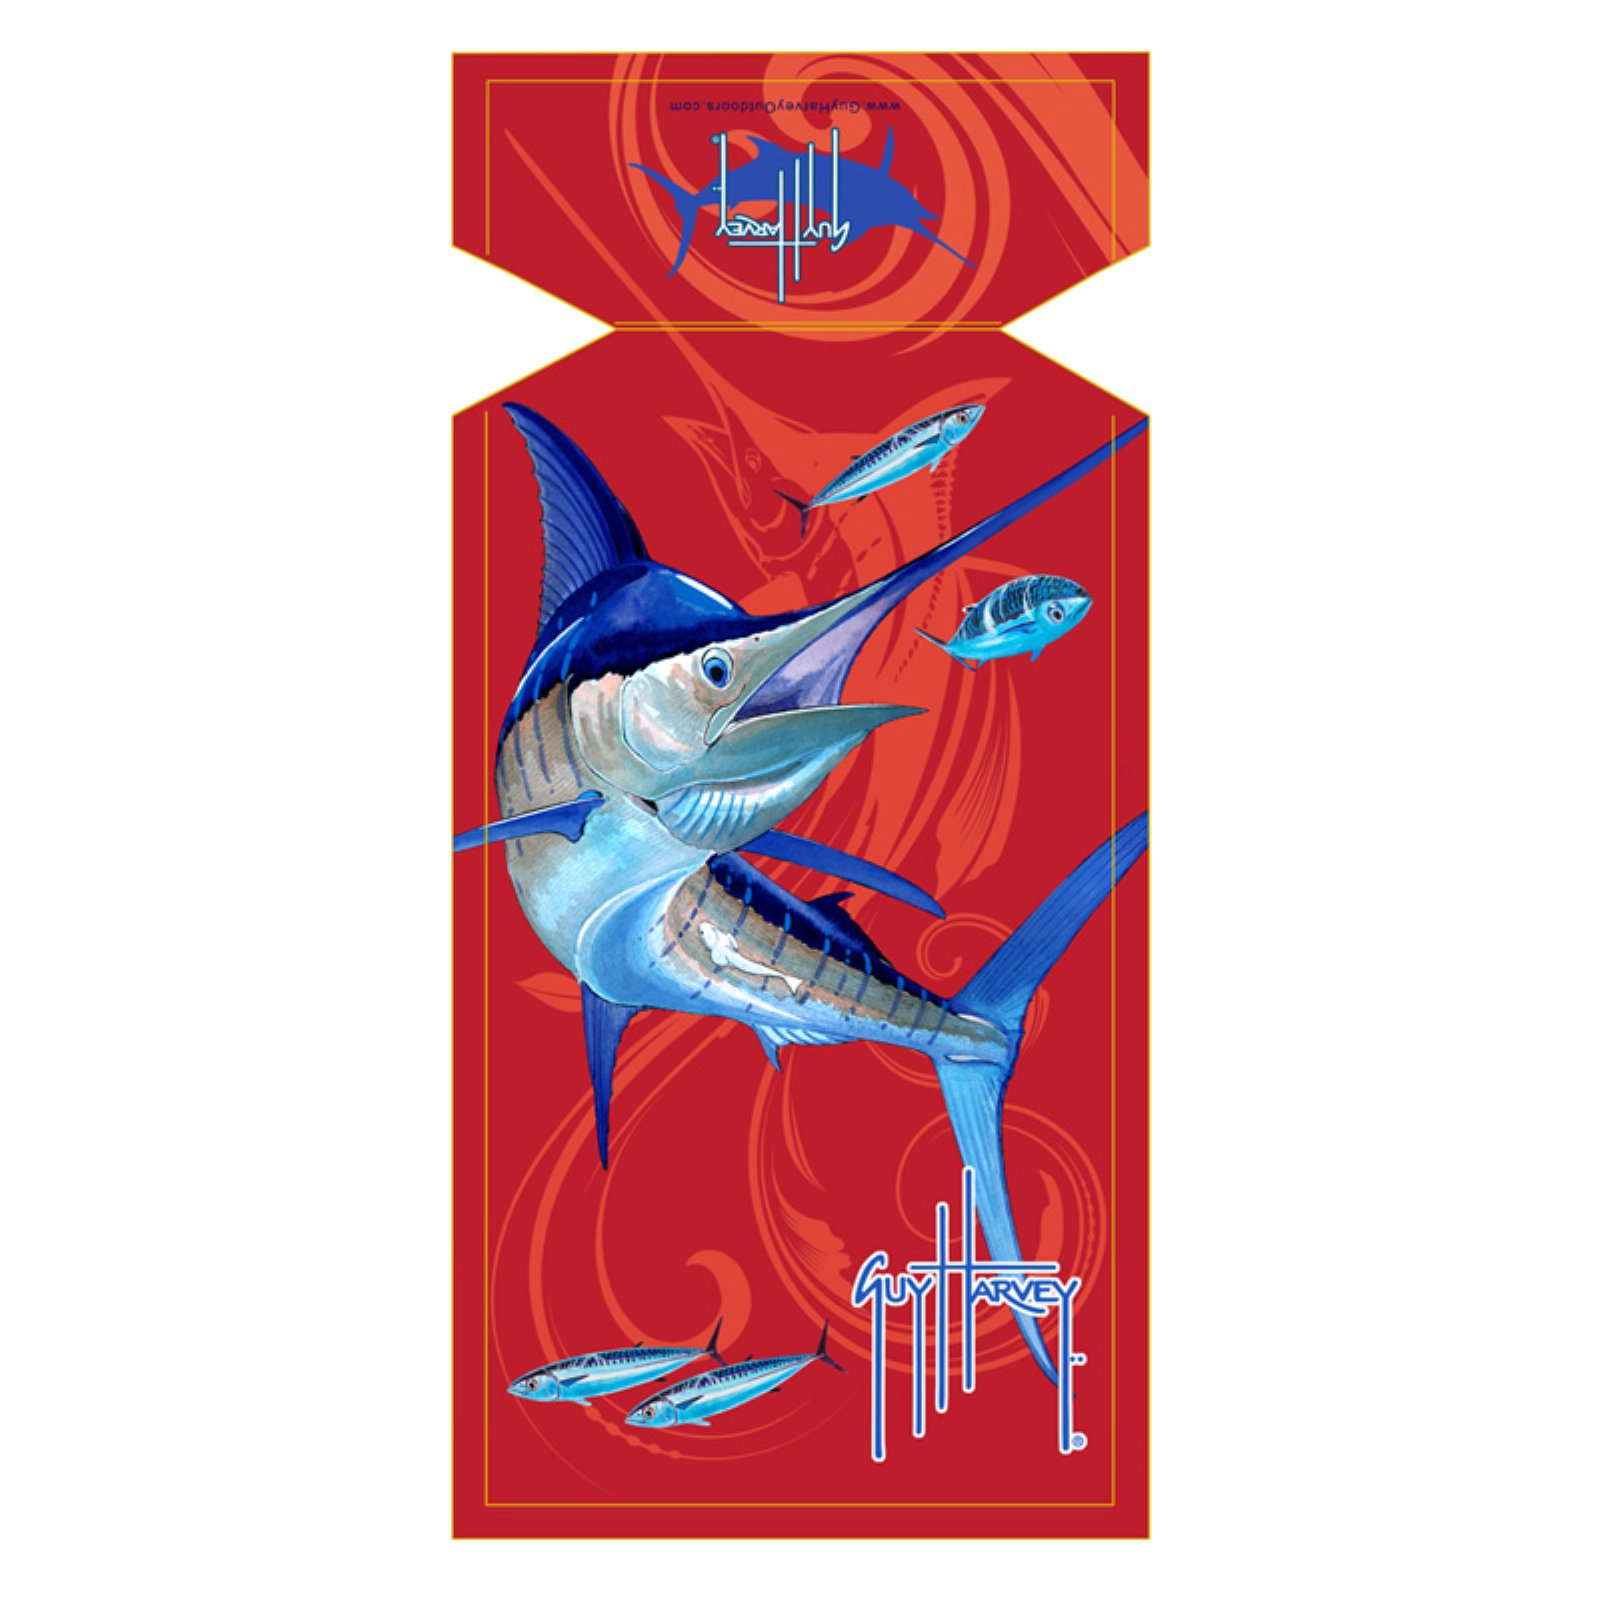 Guy Harvey Red Marlin Sea Lounge Chair Beach Towel with Hood